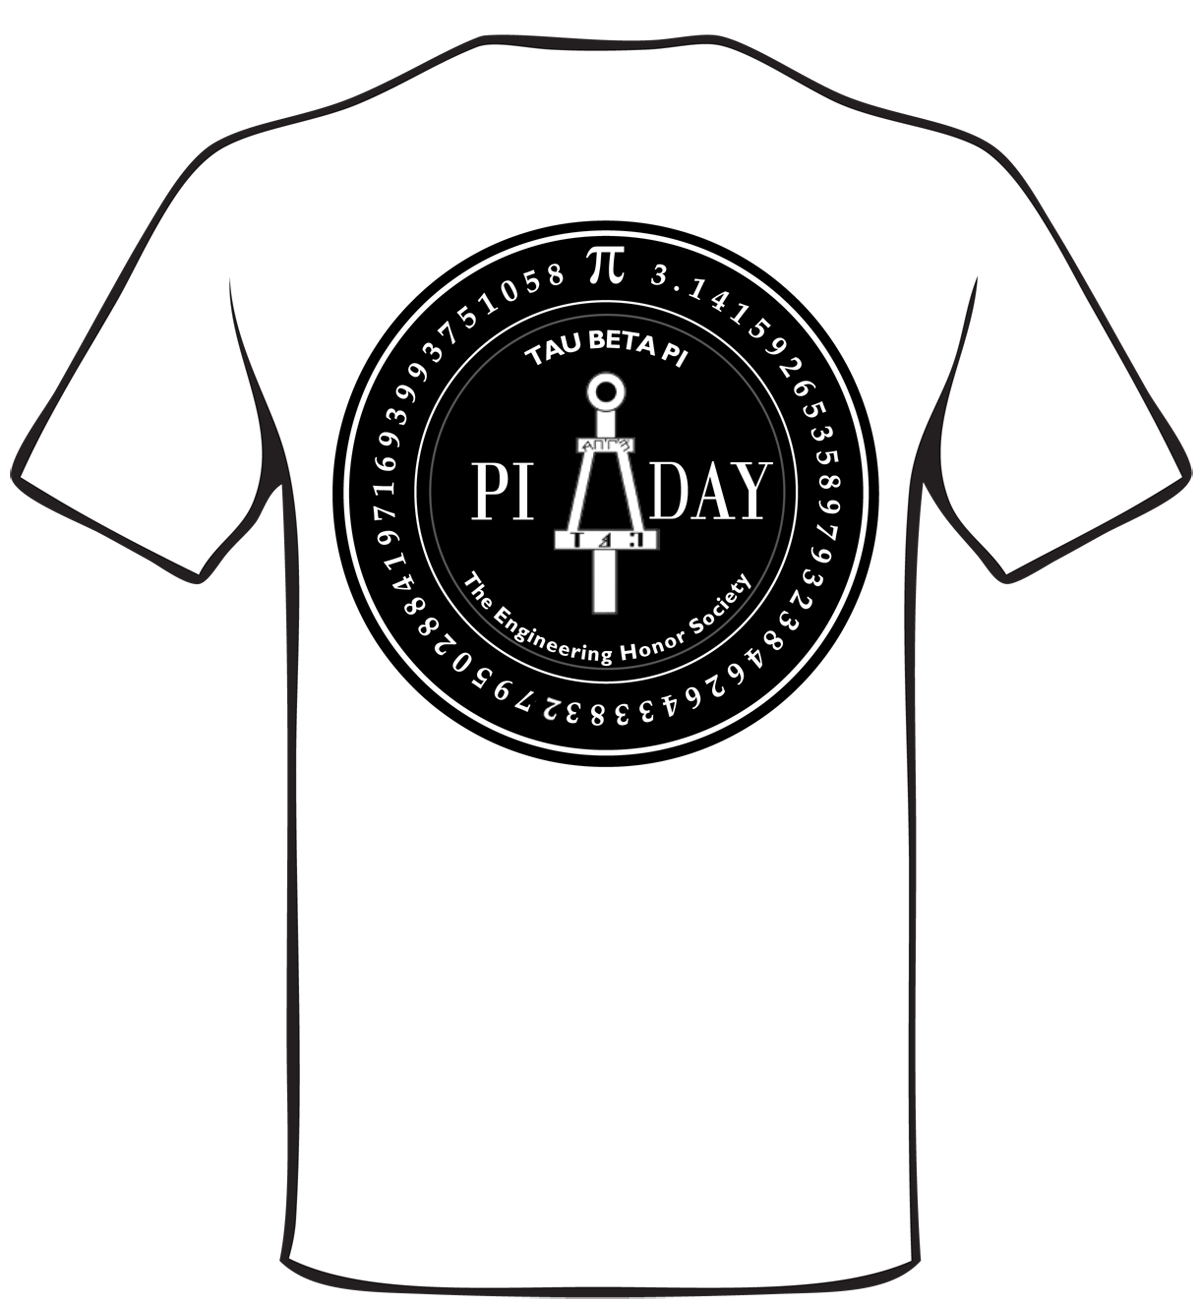 Tau Beta Pi Day 2016 t-shirt